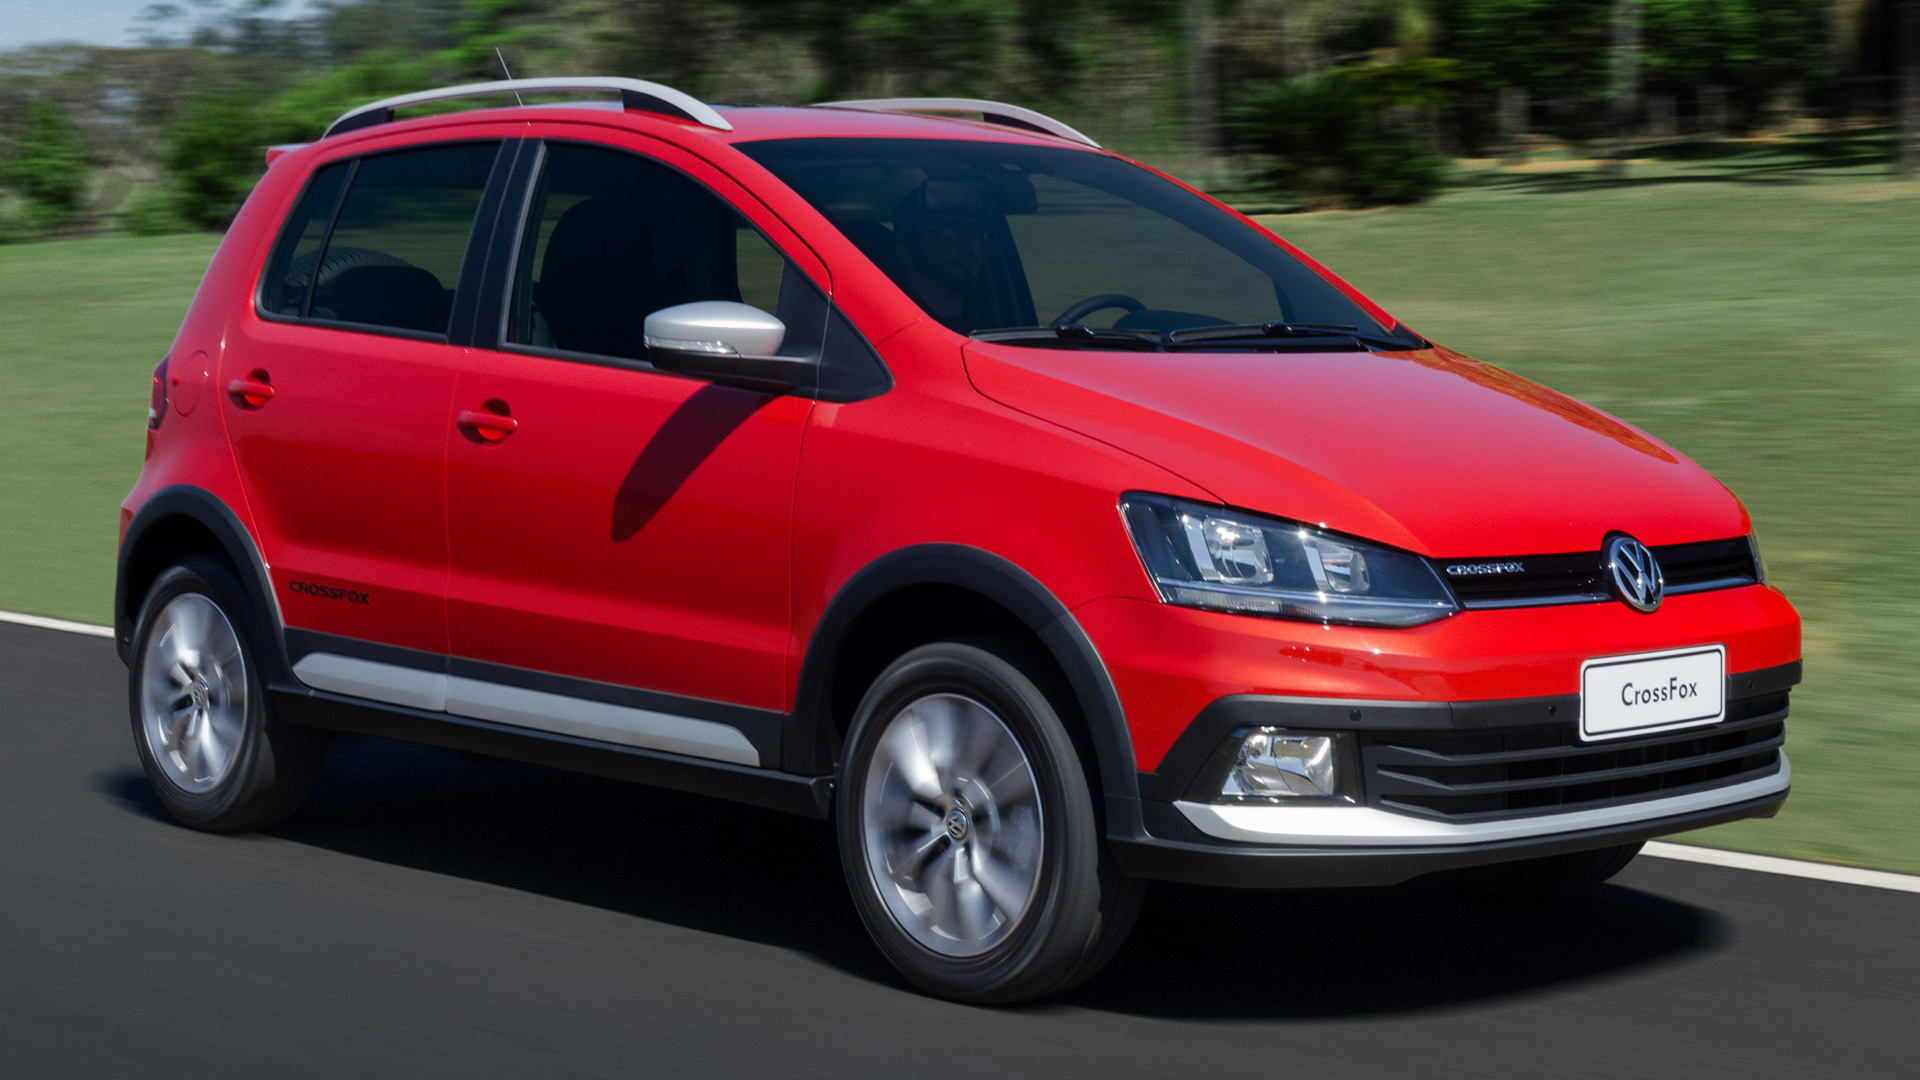 Fox Ford Lincoln >> Volkswagen CrossFox (2014) Wallpapers and HD Images - Car ...